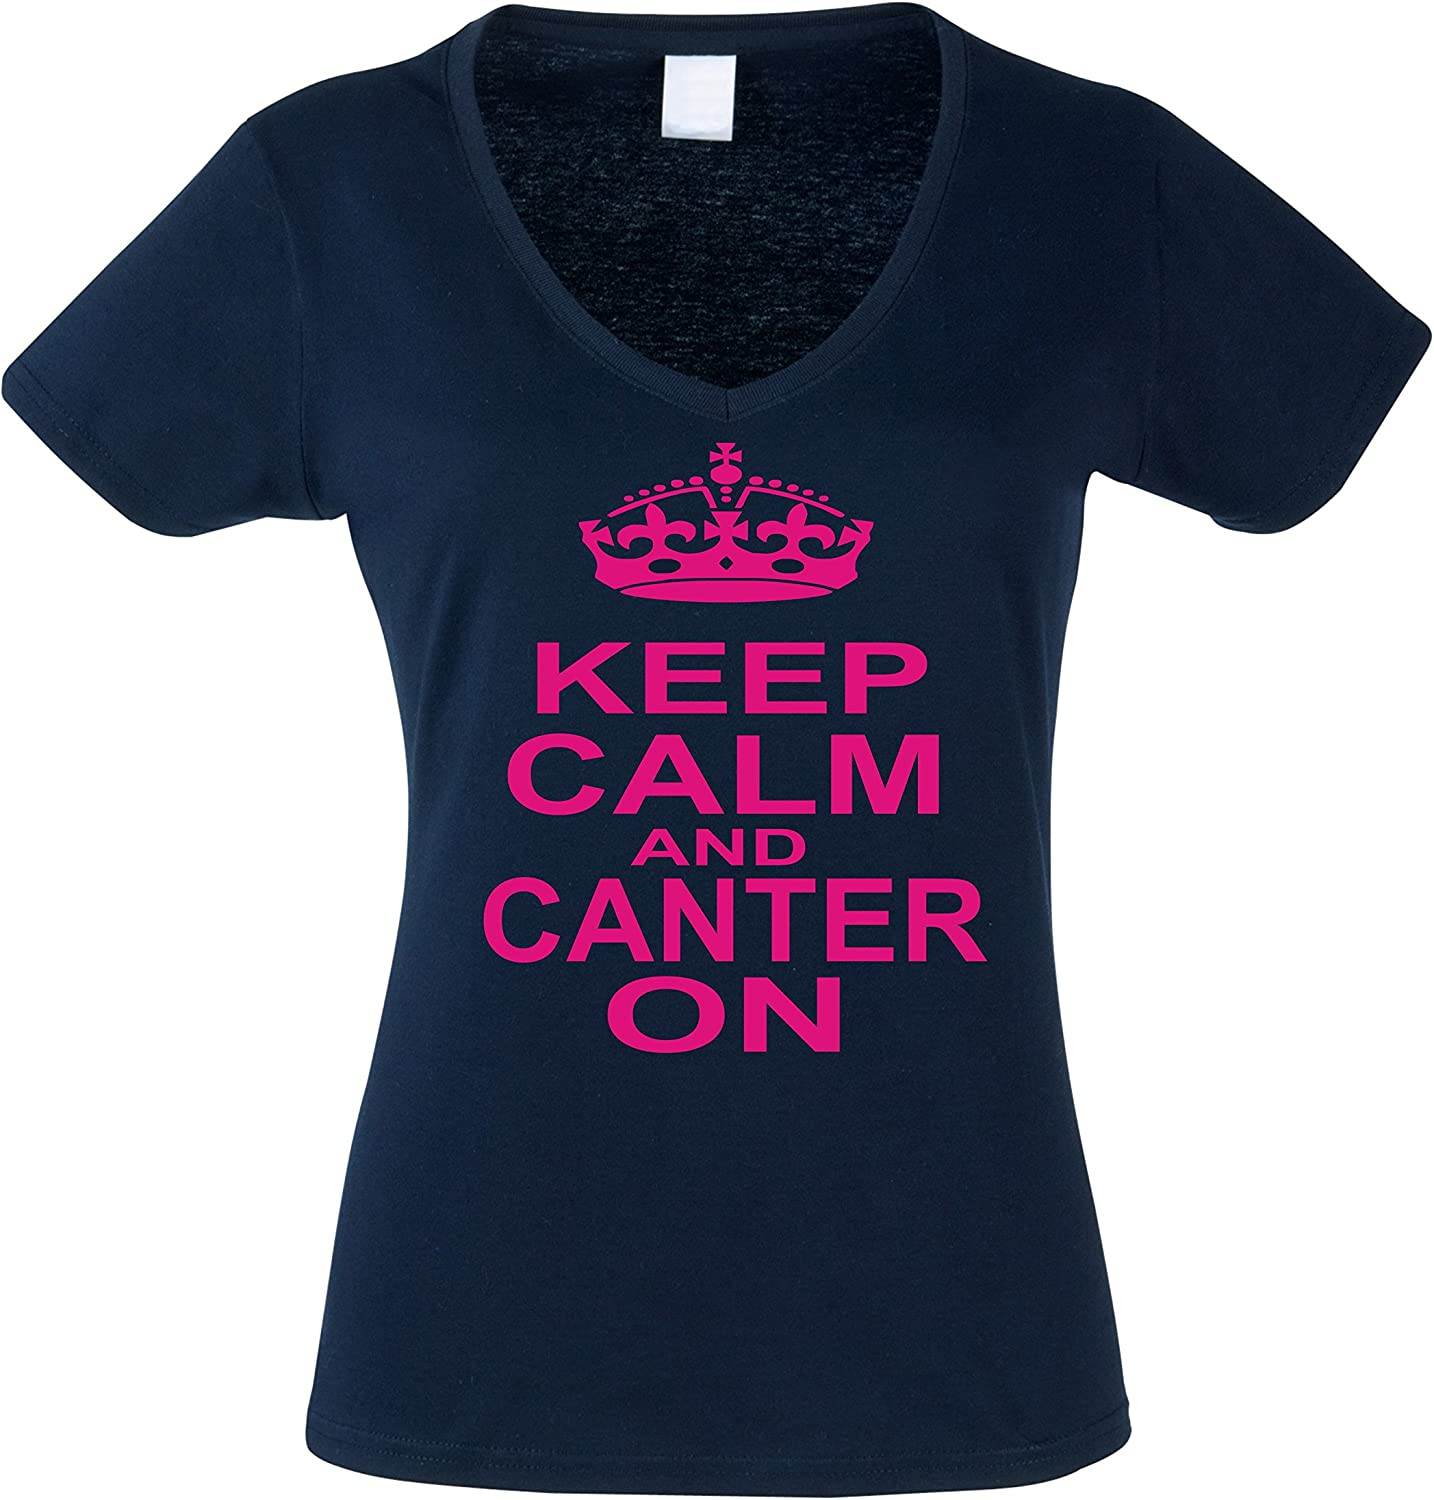 Women/'s fitted horsey t-shirt /'KEEP CALM AND CANTER ON/'